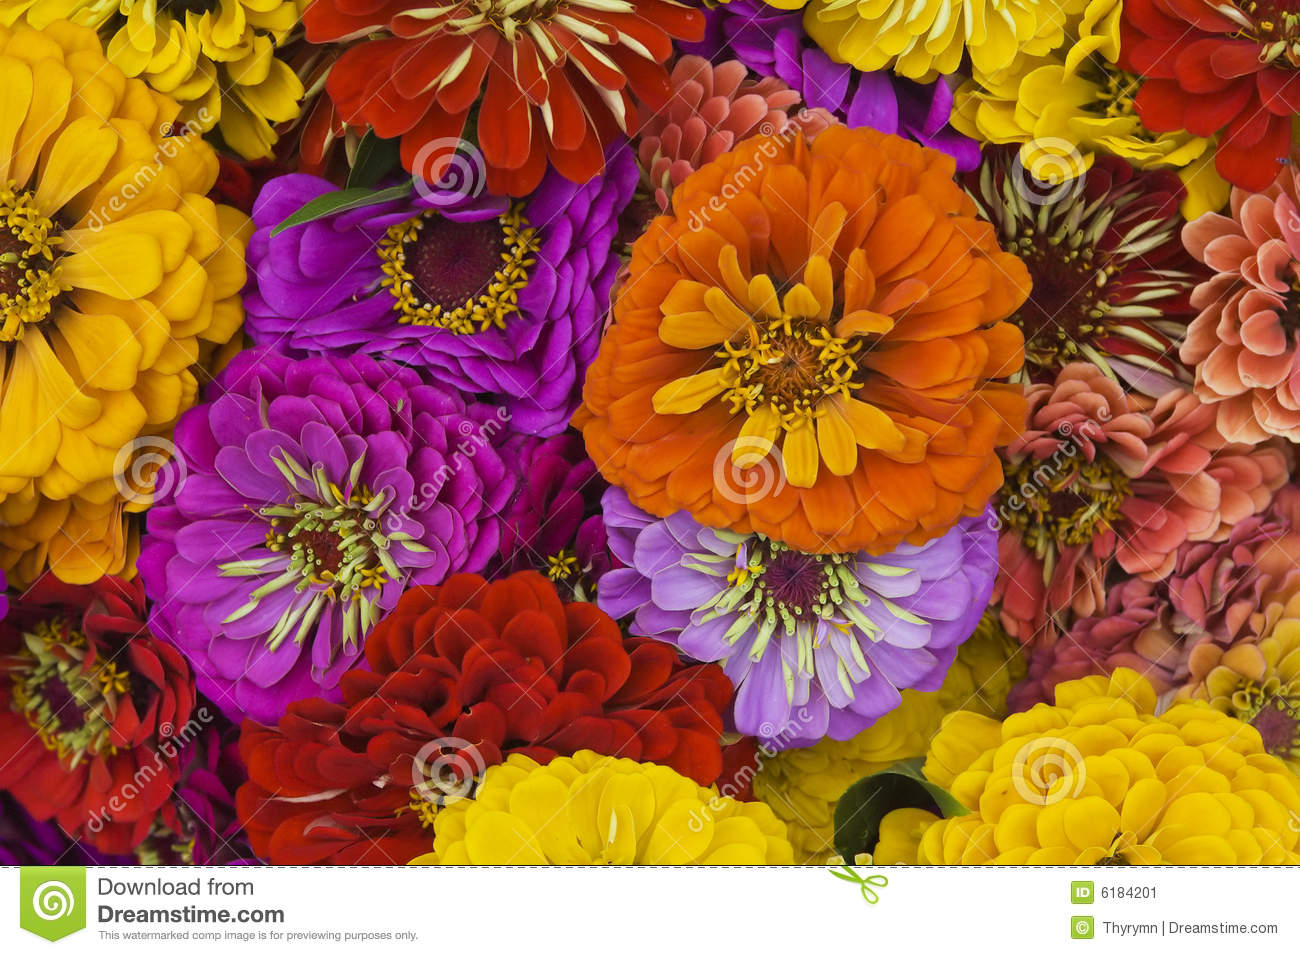 Bunch of flowers in a bouquet close up stock image image of bunch of flowers in a bouquet close up izmirmasajfo